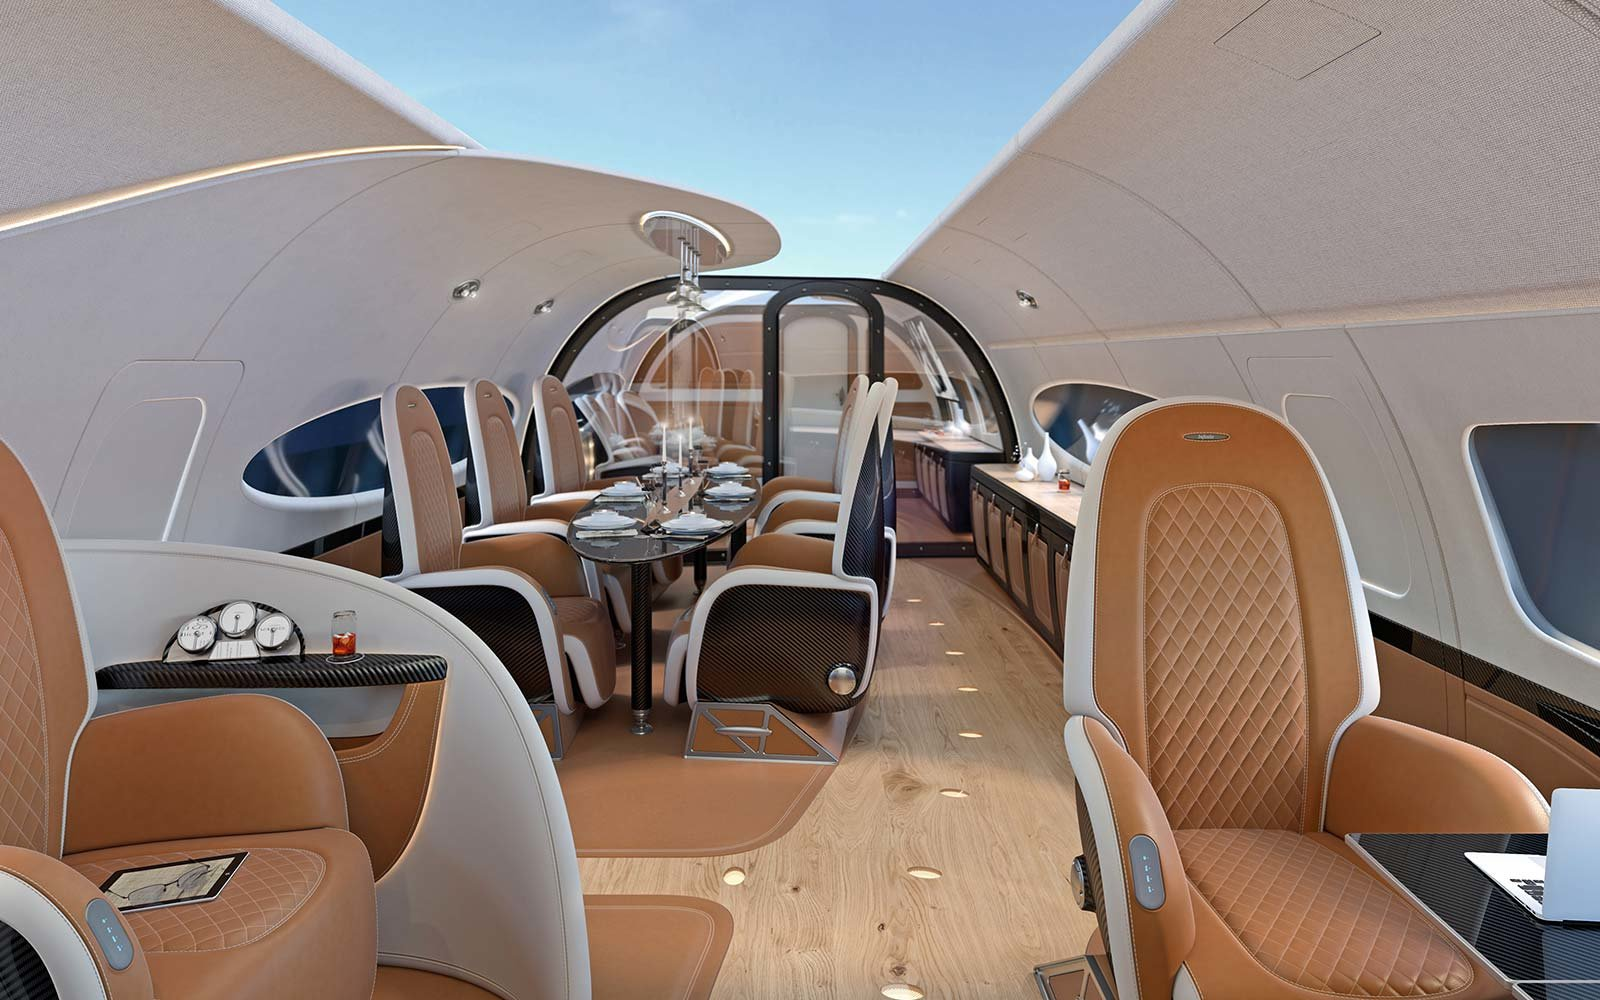 Airbus A319 Conference Dining Billionaire Flying Car